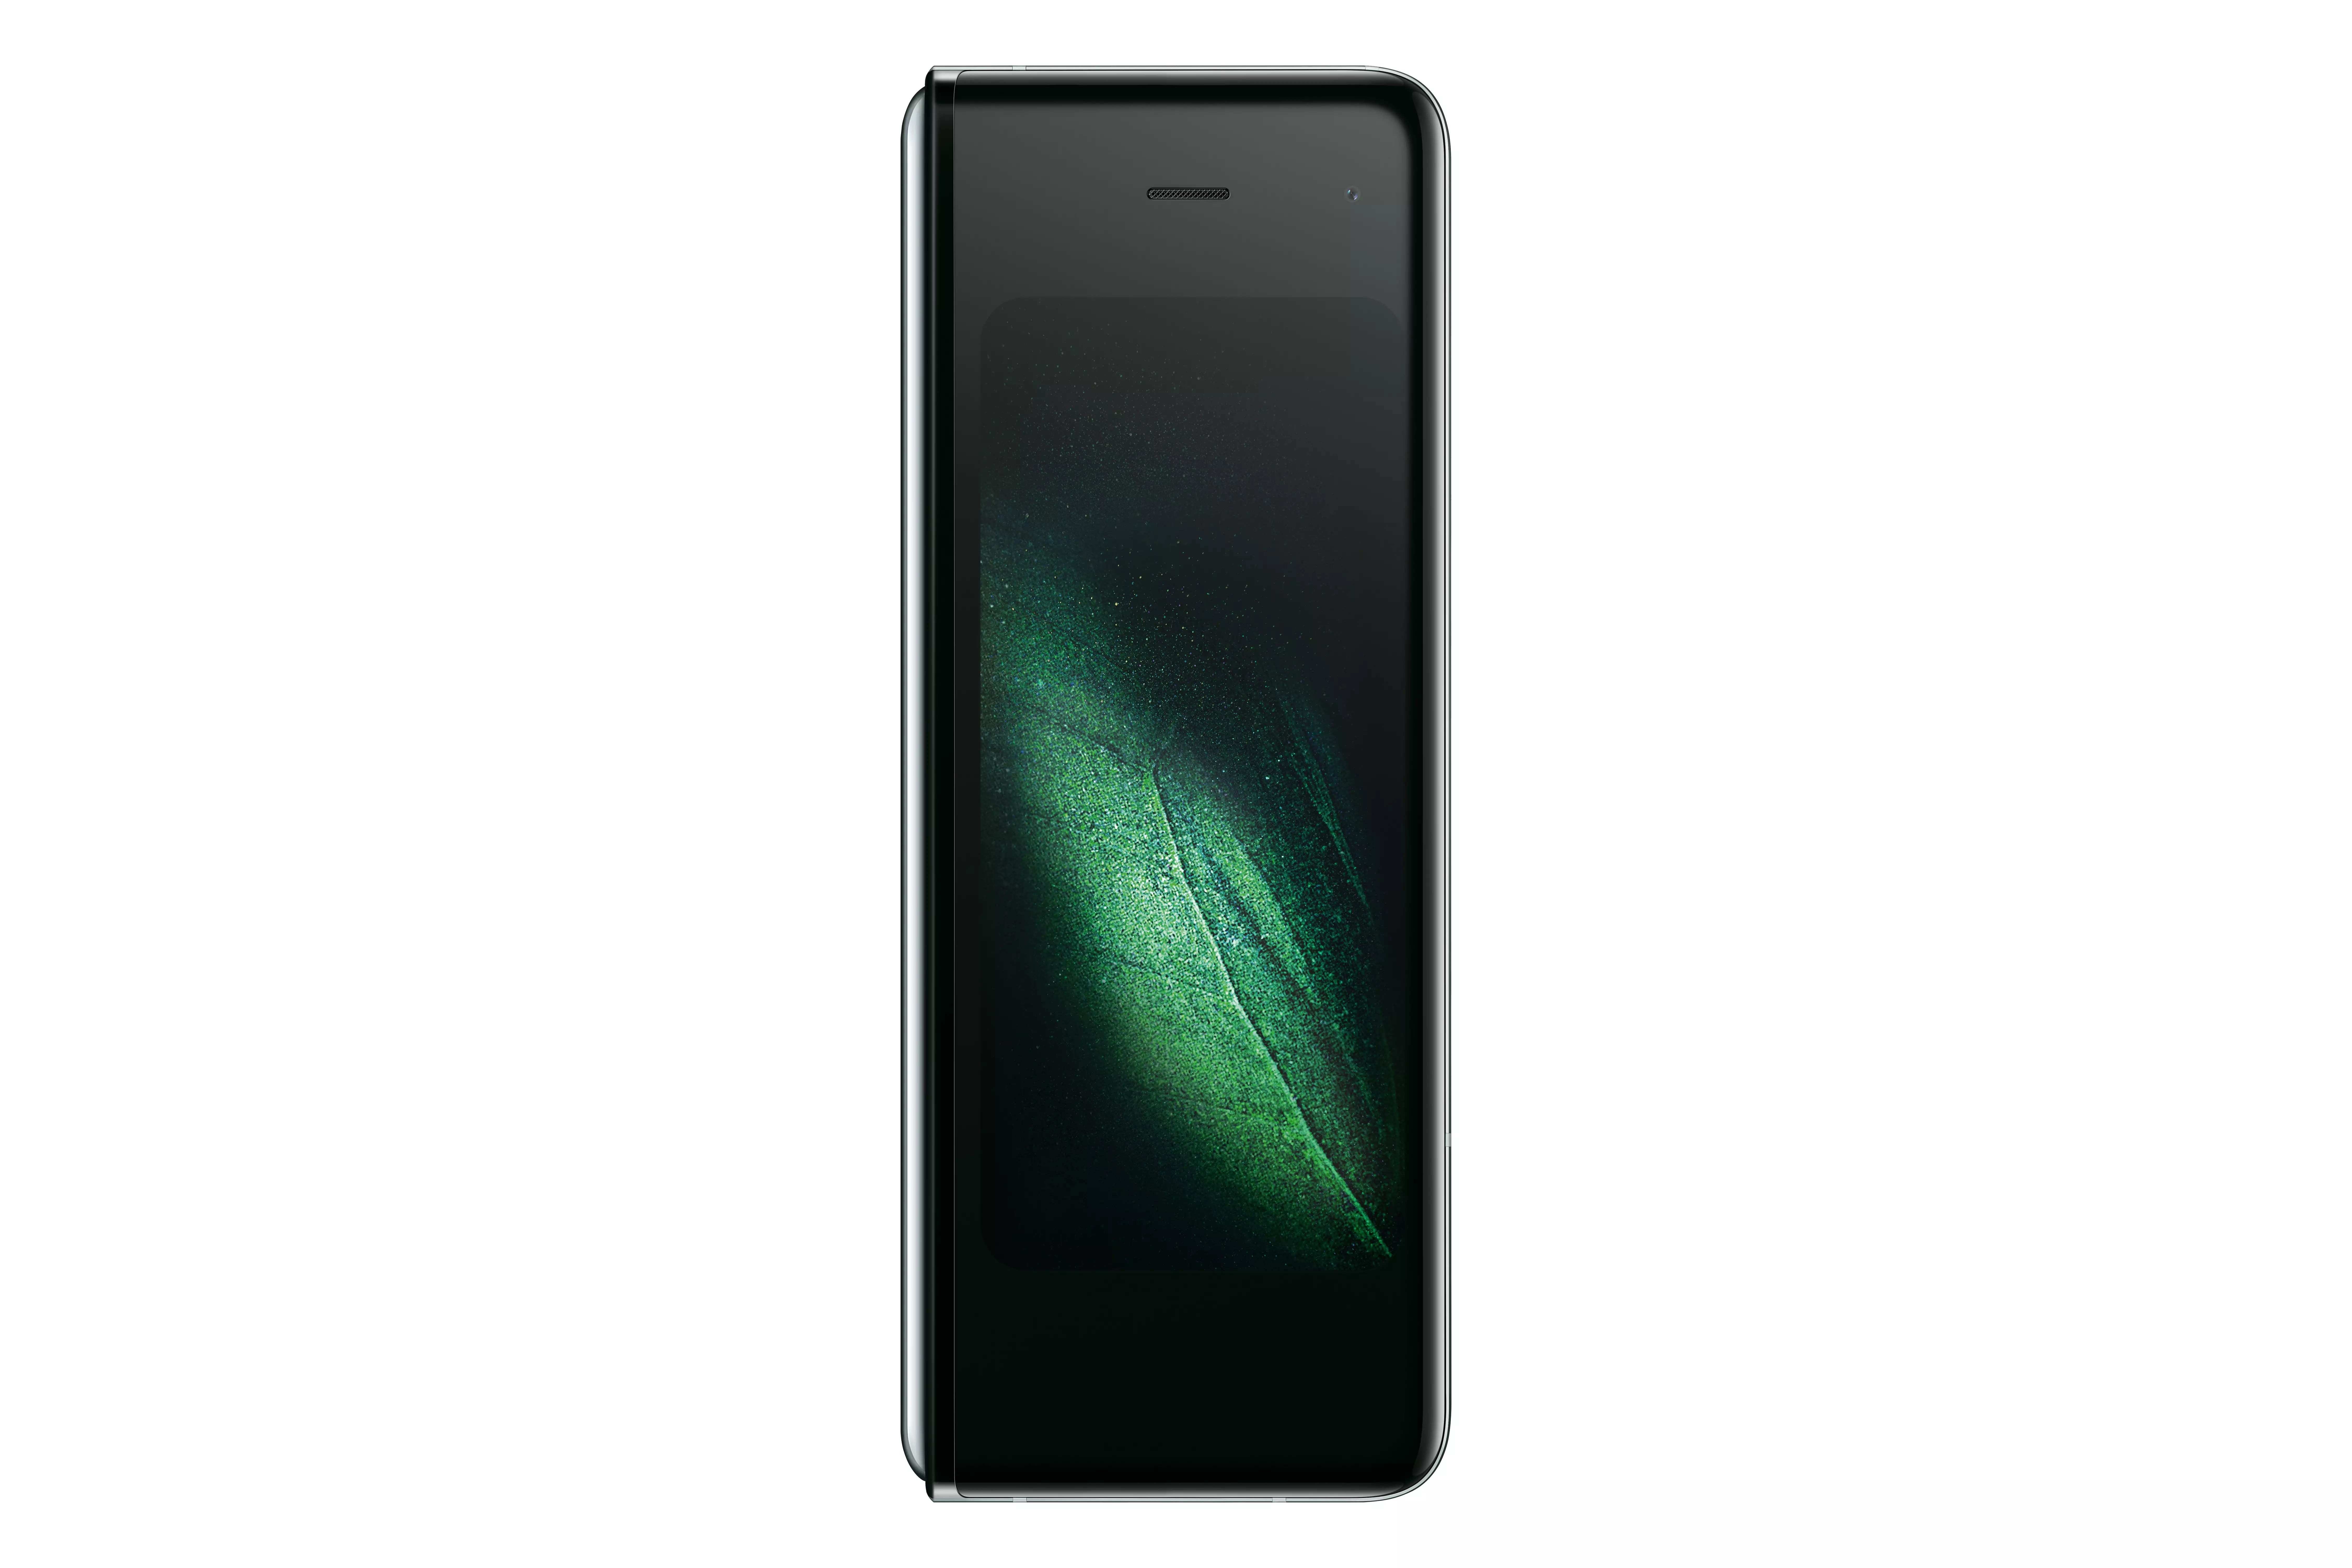 Samsung_Galaxy-Fold_SM-F900_Space_Silver_Front